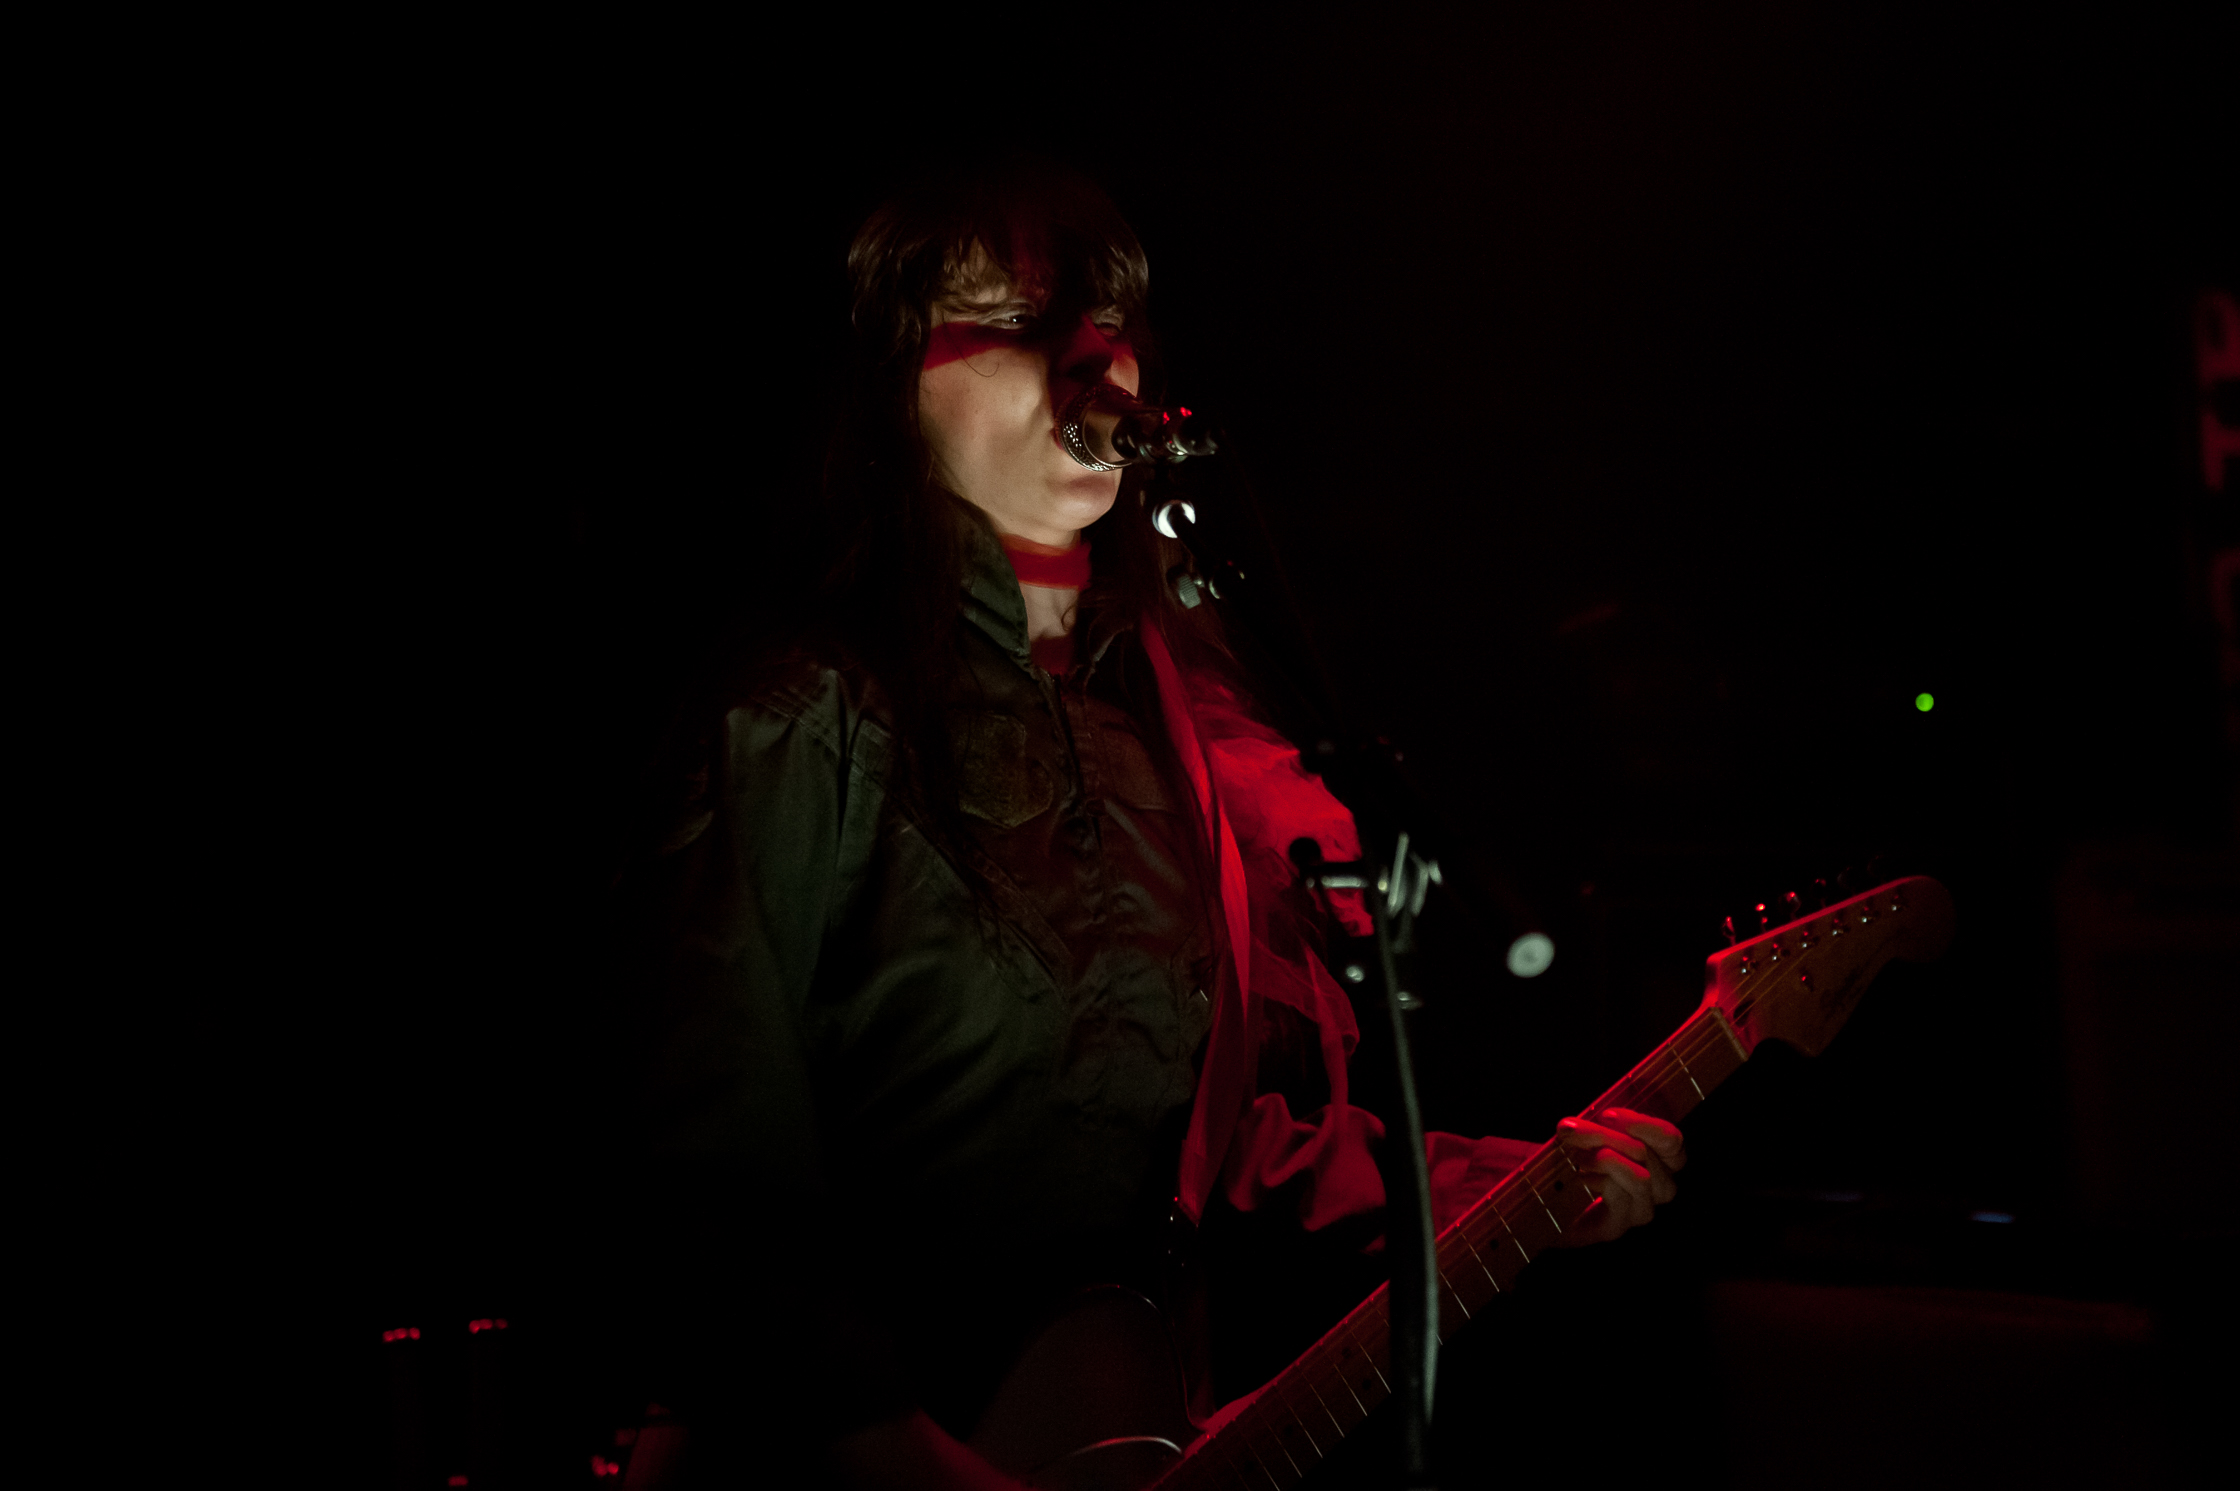 2016_09_23_arteather_lebutcherettes-1265